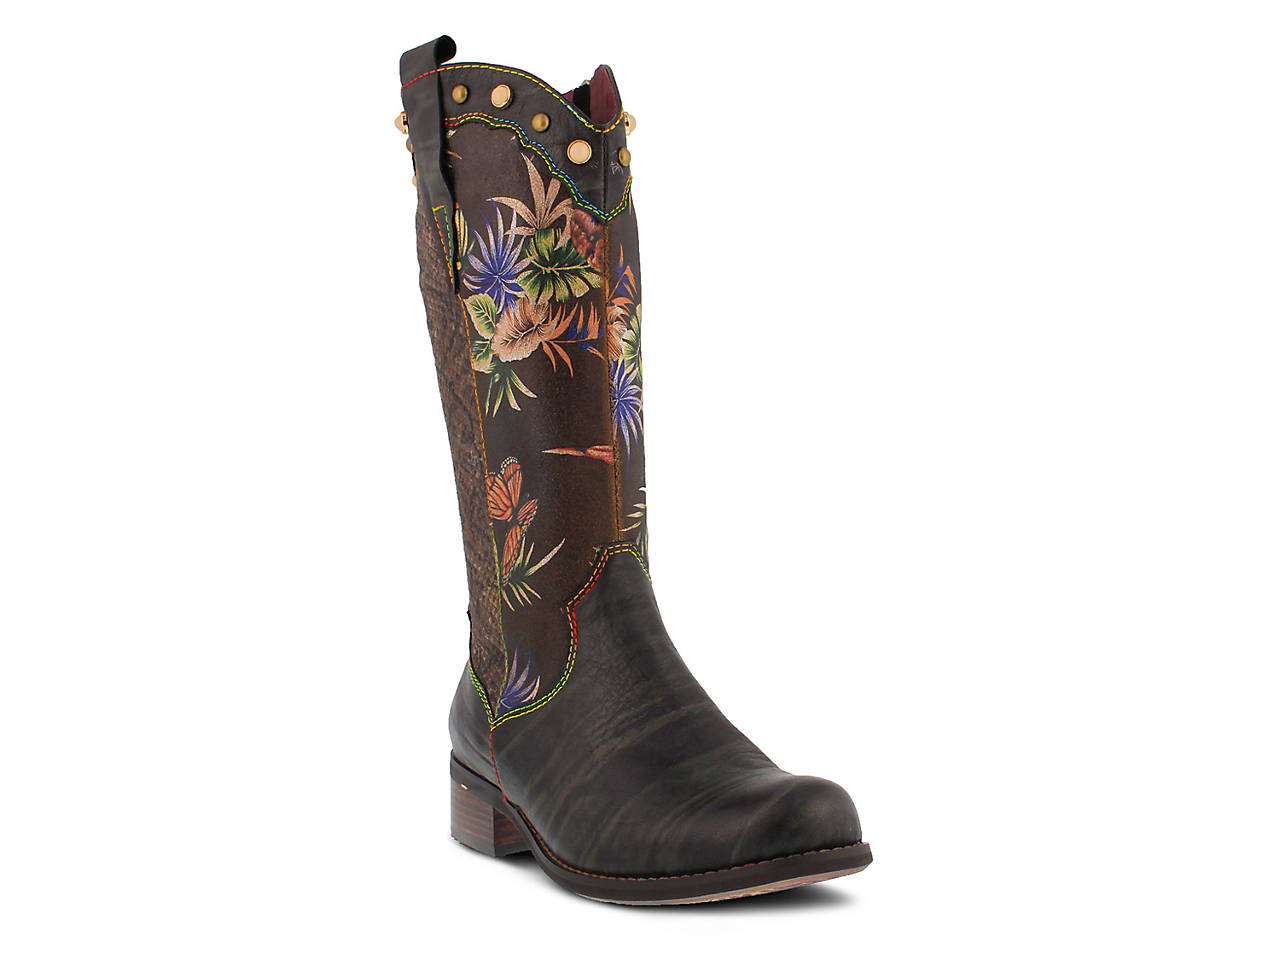 580e704f1f0 L Artiste by Spring Step Tiziana Western Boot Women s Shoes